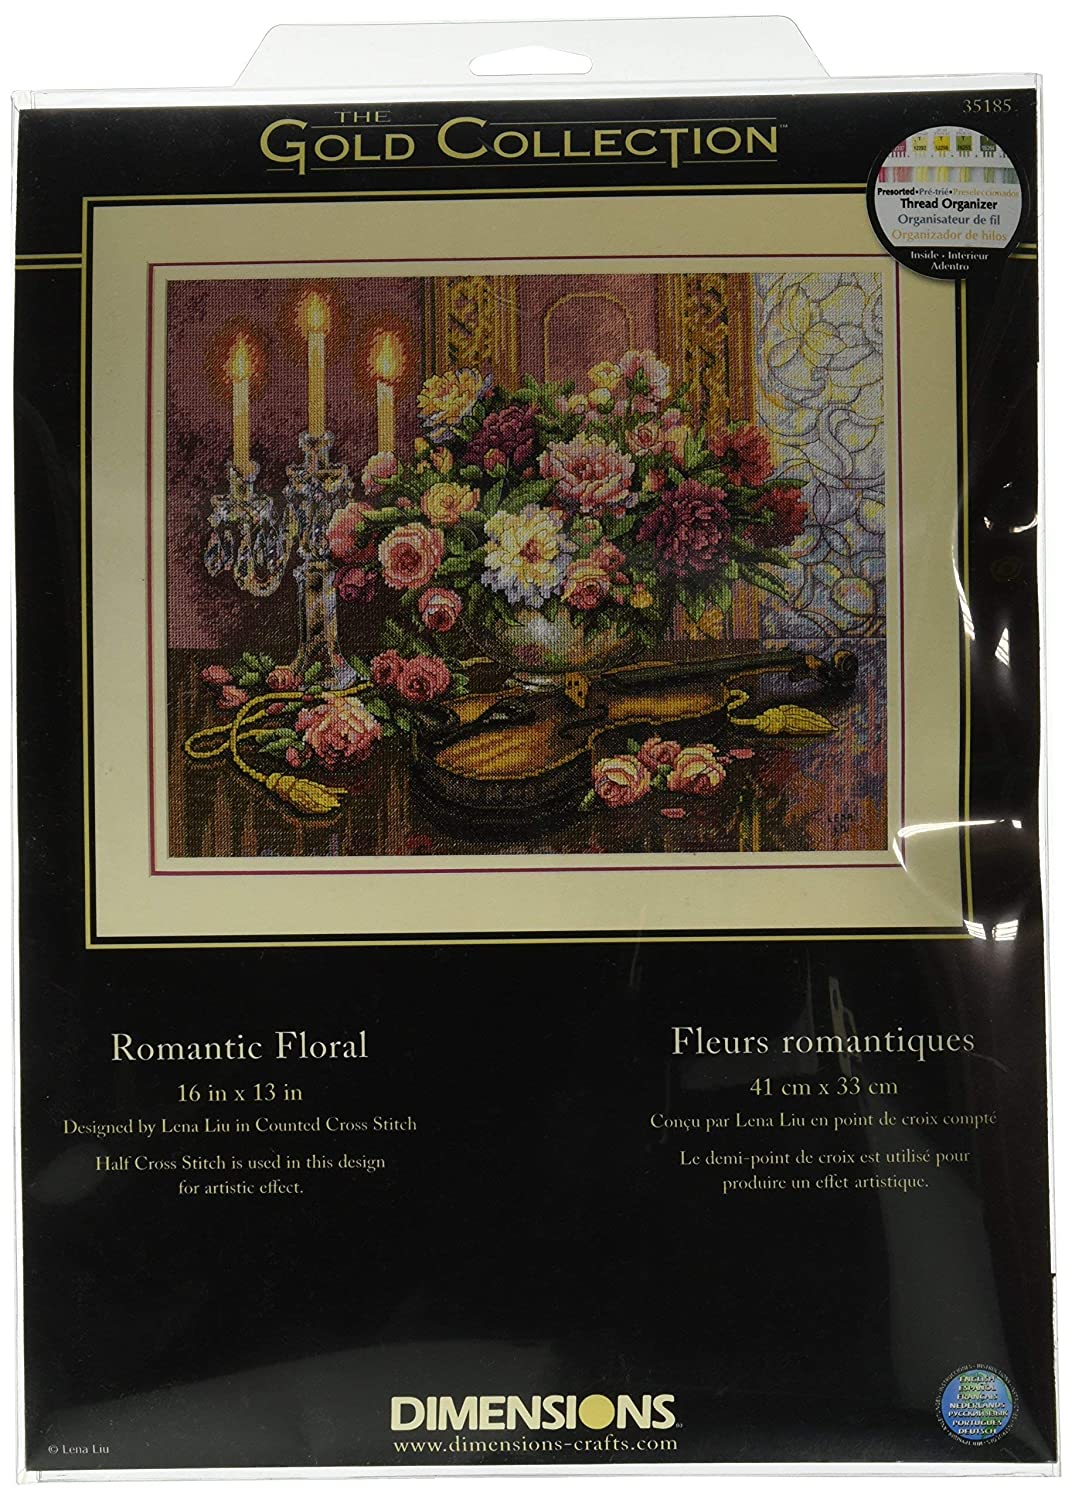 Romantic Floral 13 x 16 14 Count Beige Aida Dimensions Gold Collection Counted Cross Stitch Kit